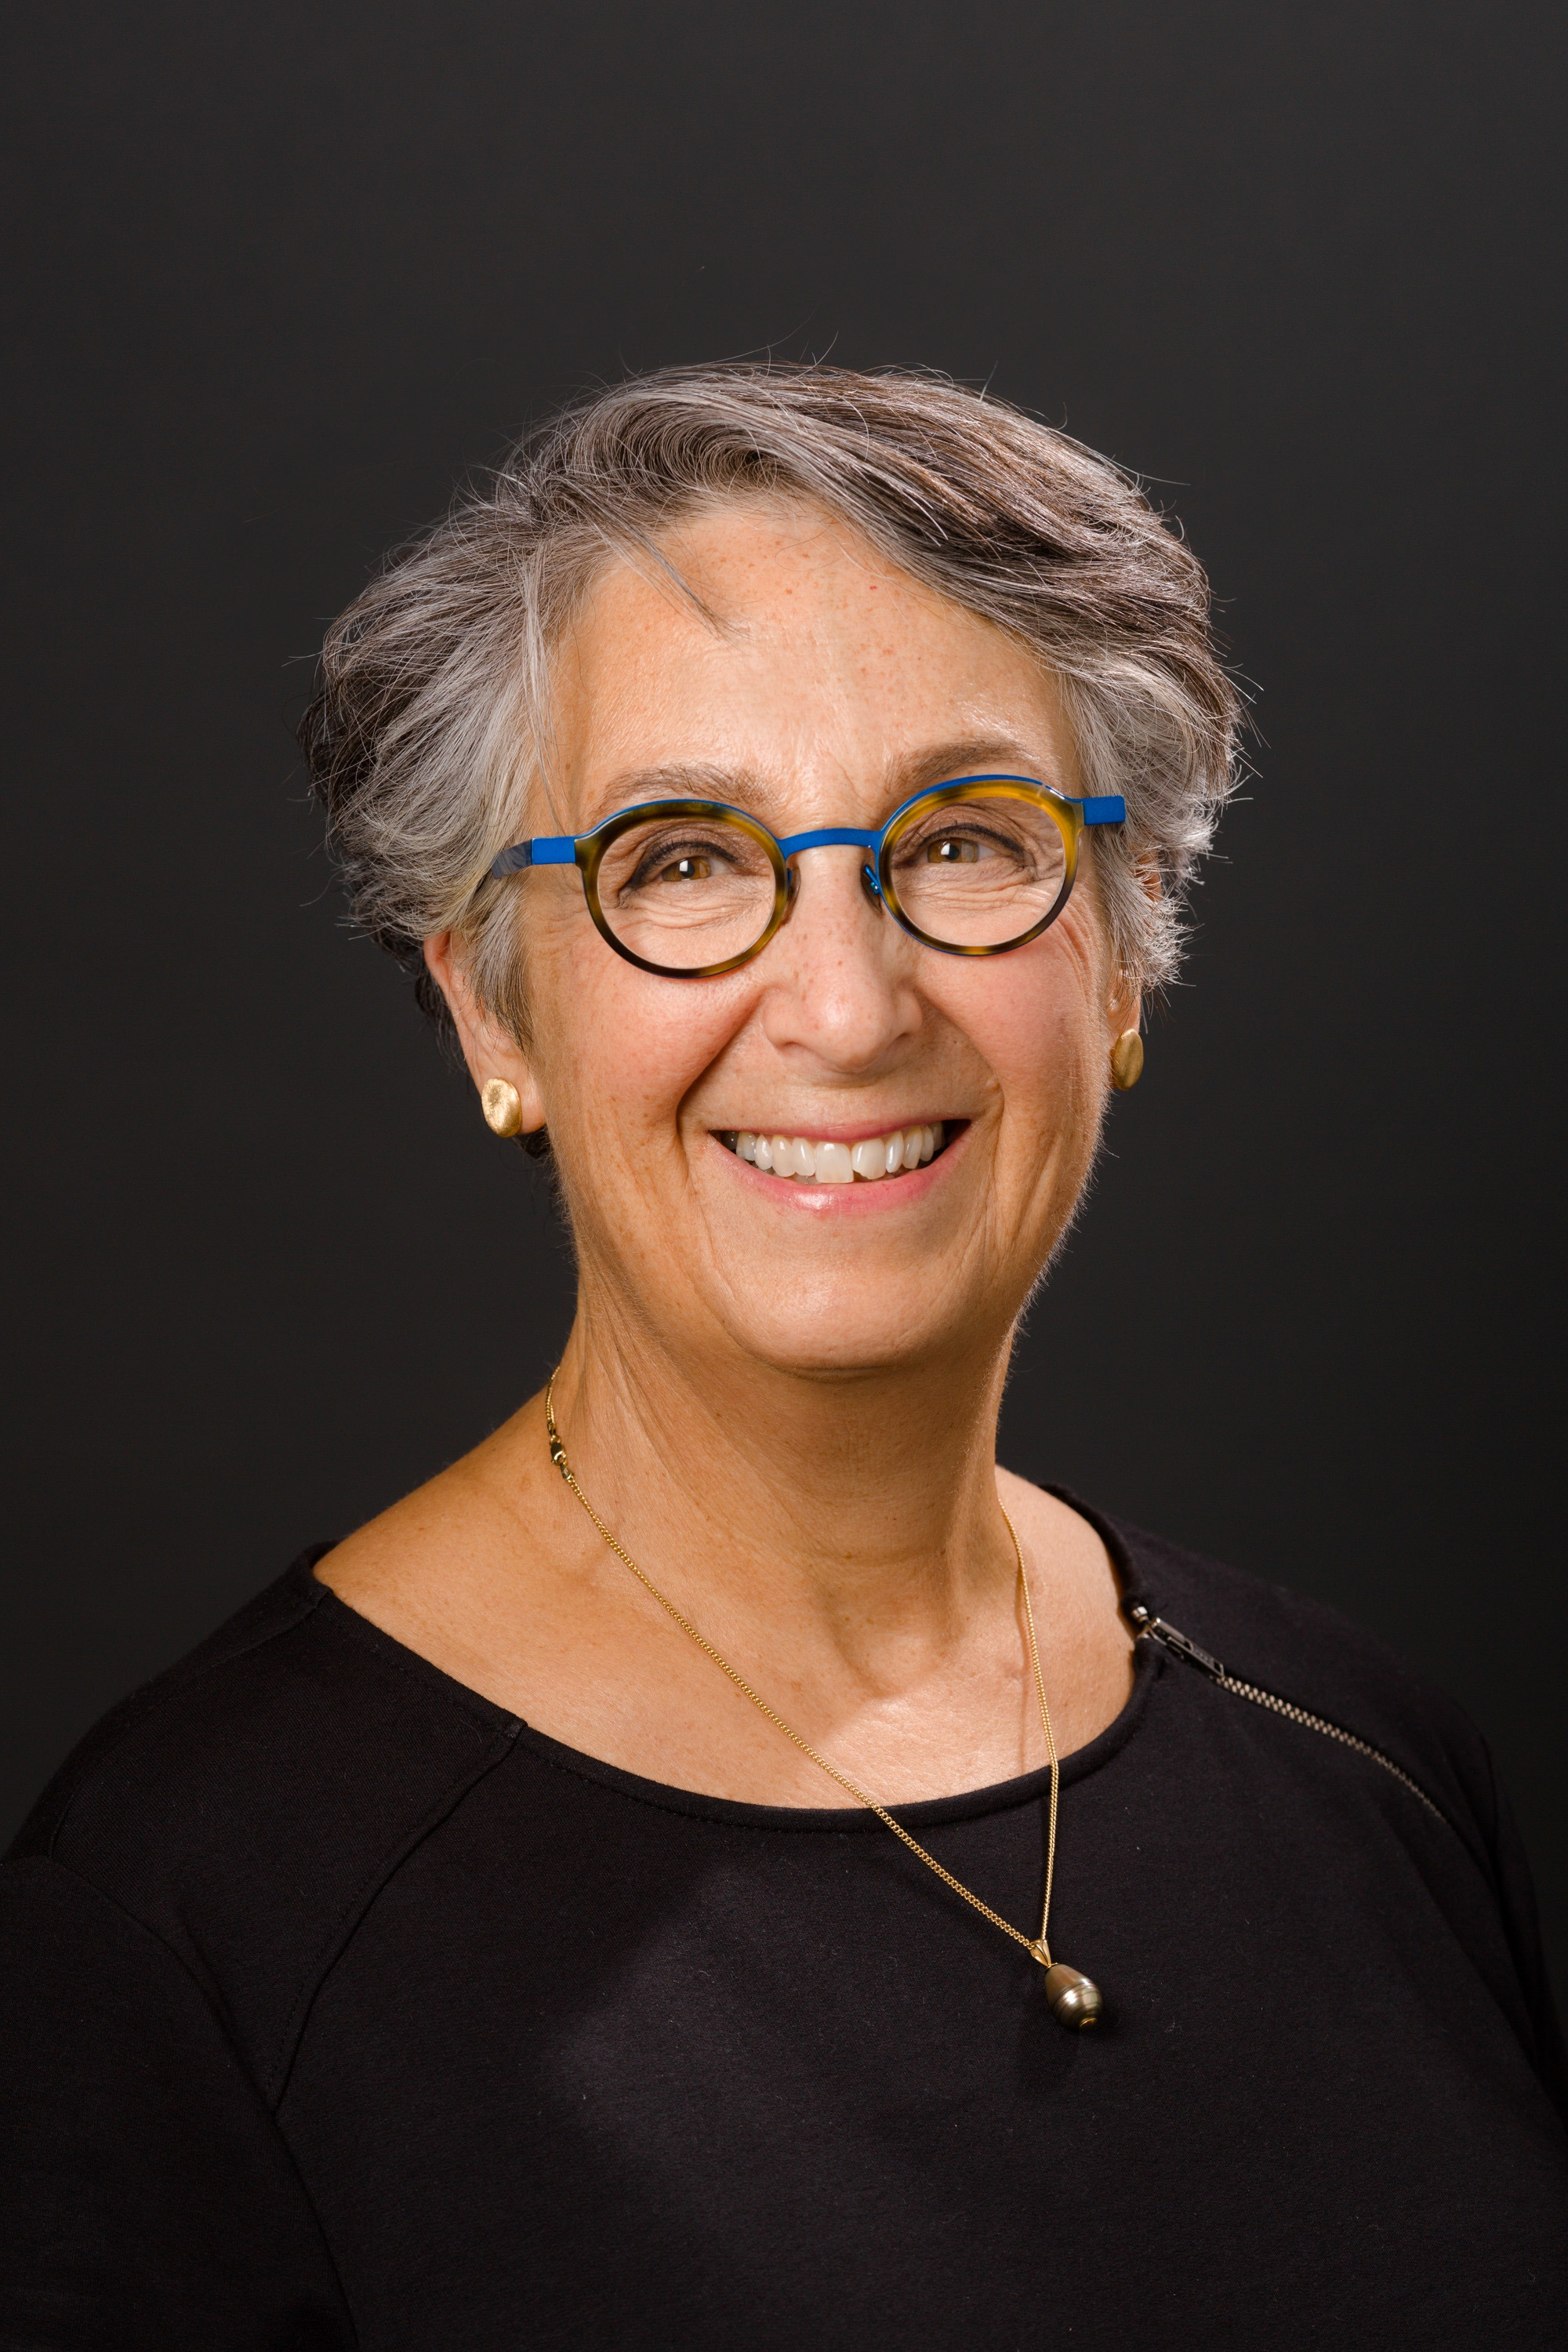 Dr. Nina Horowitz is an Assistant Professor of Surgery (Breast)